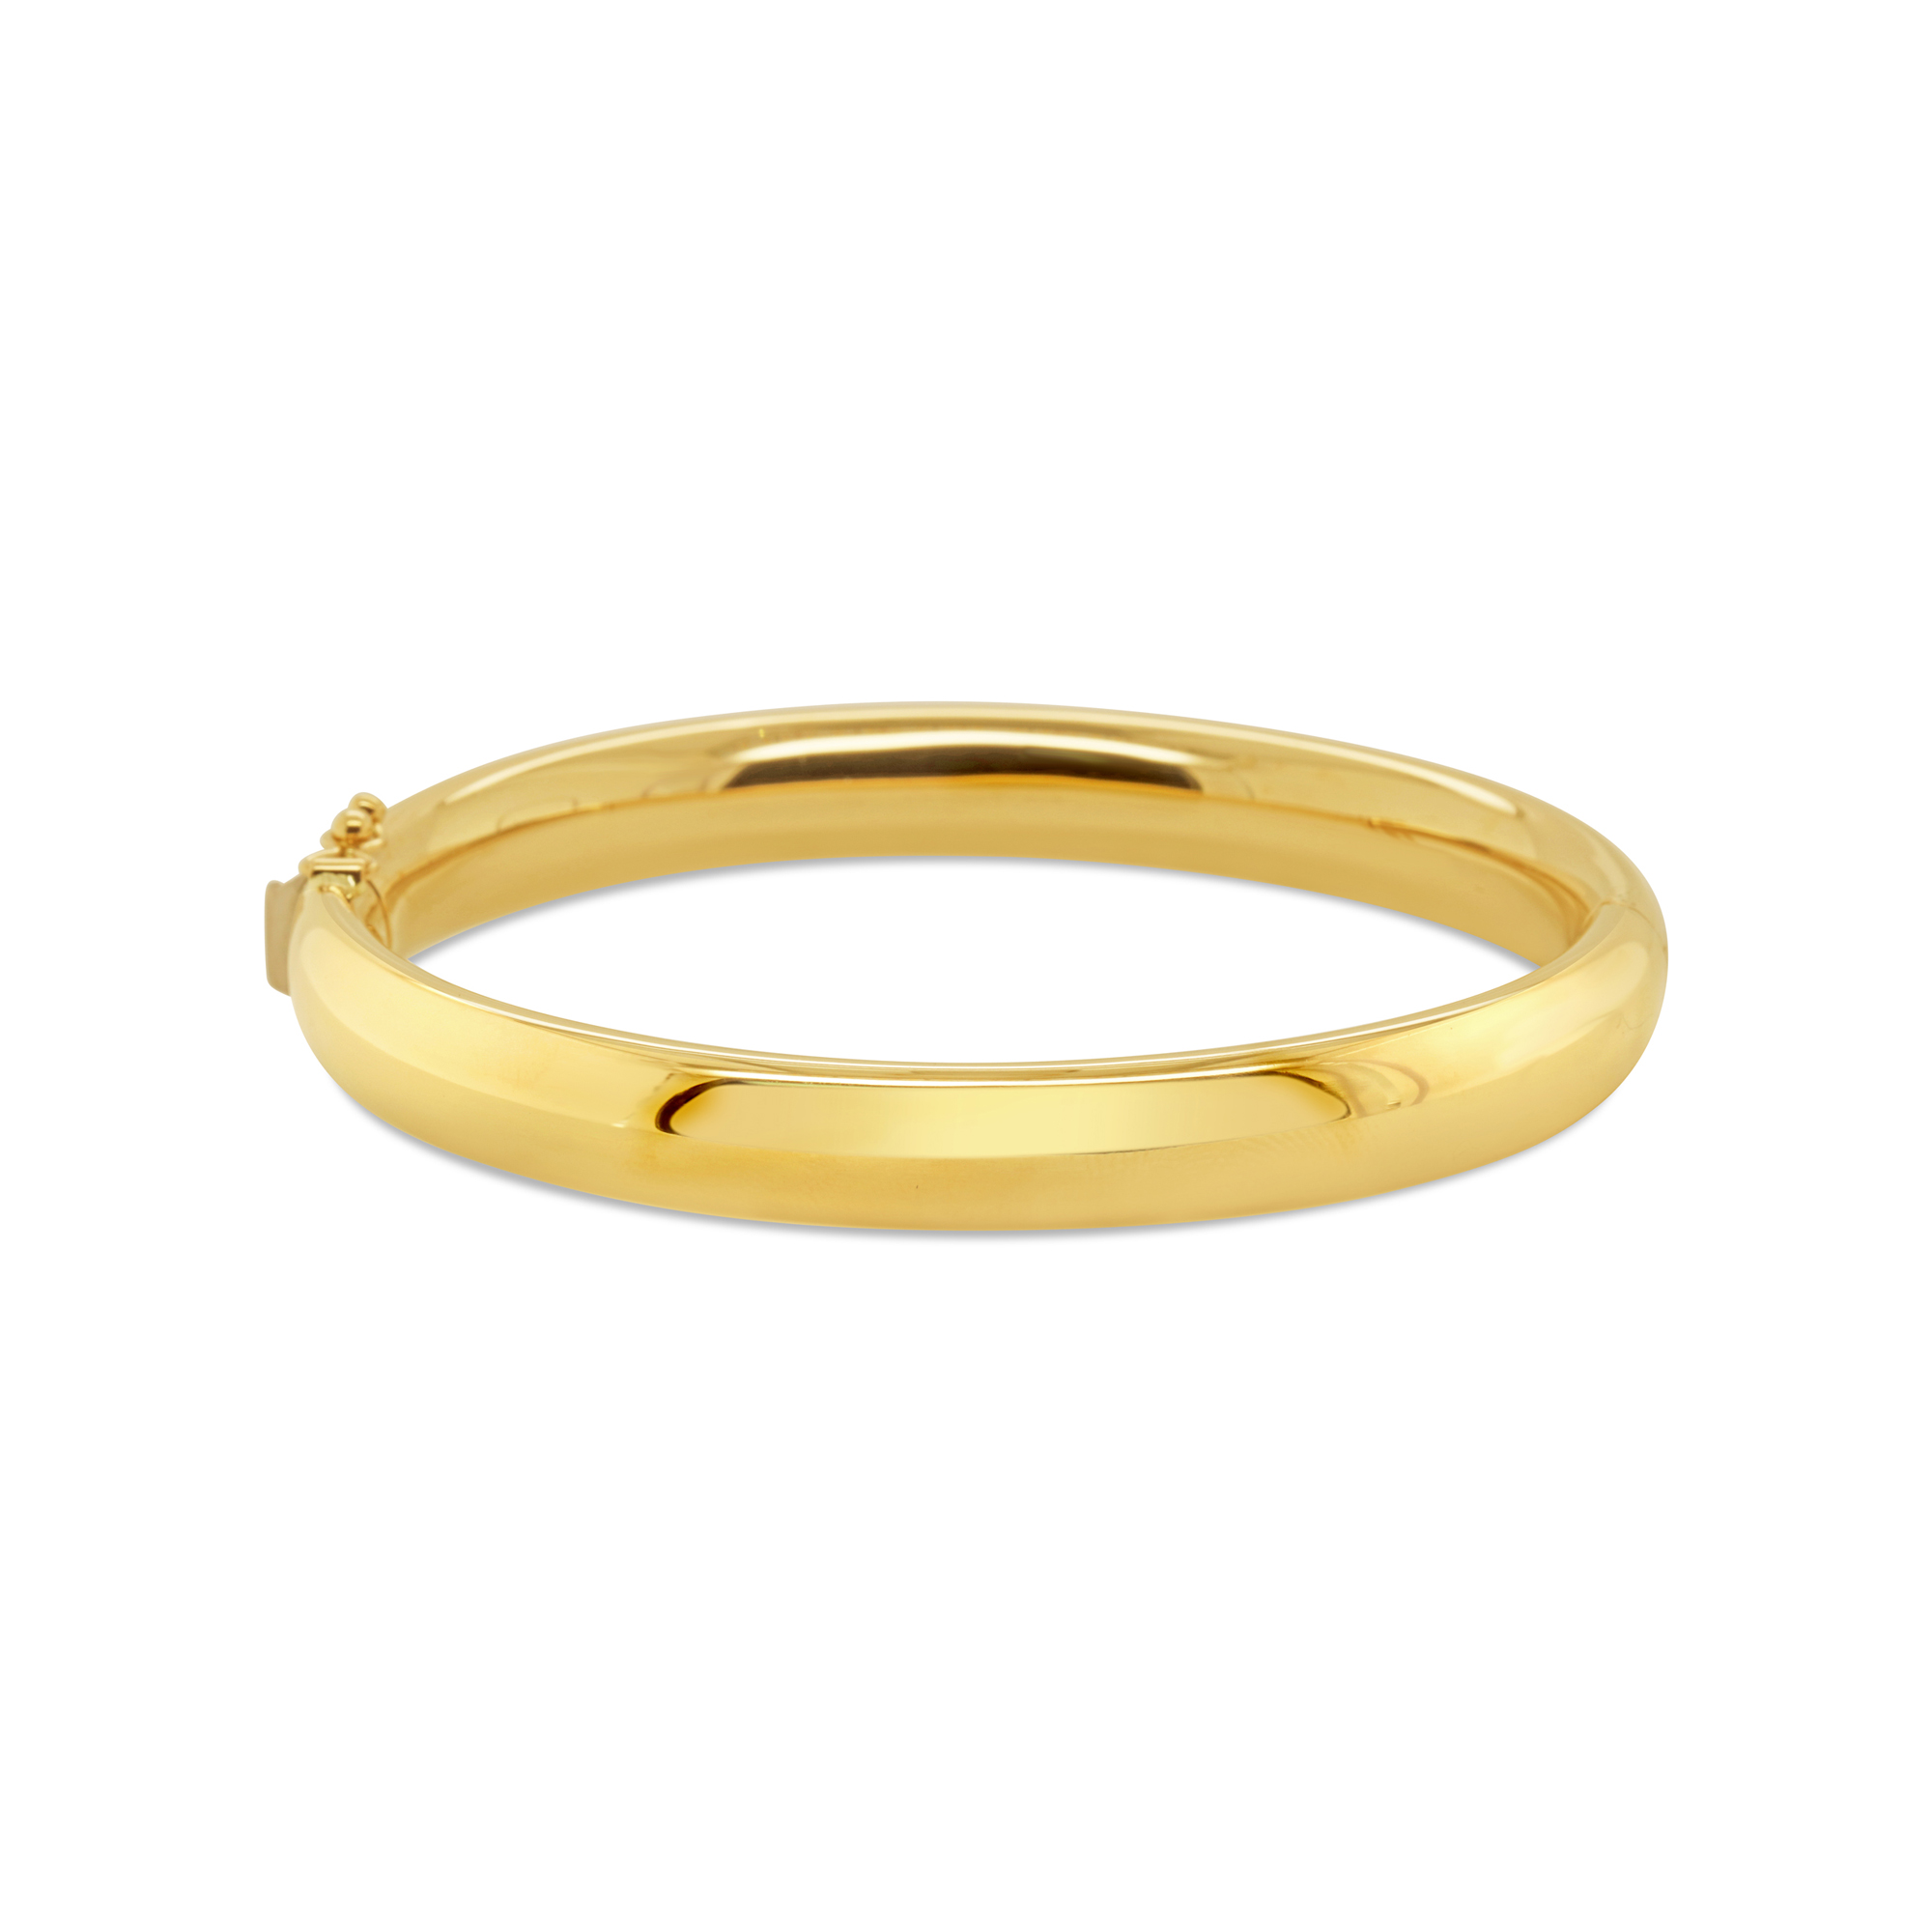 Yellow Gold Oval Shaped Bangle